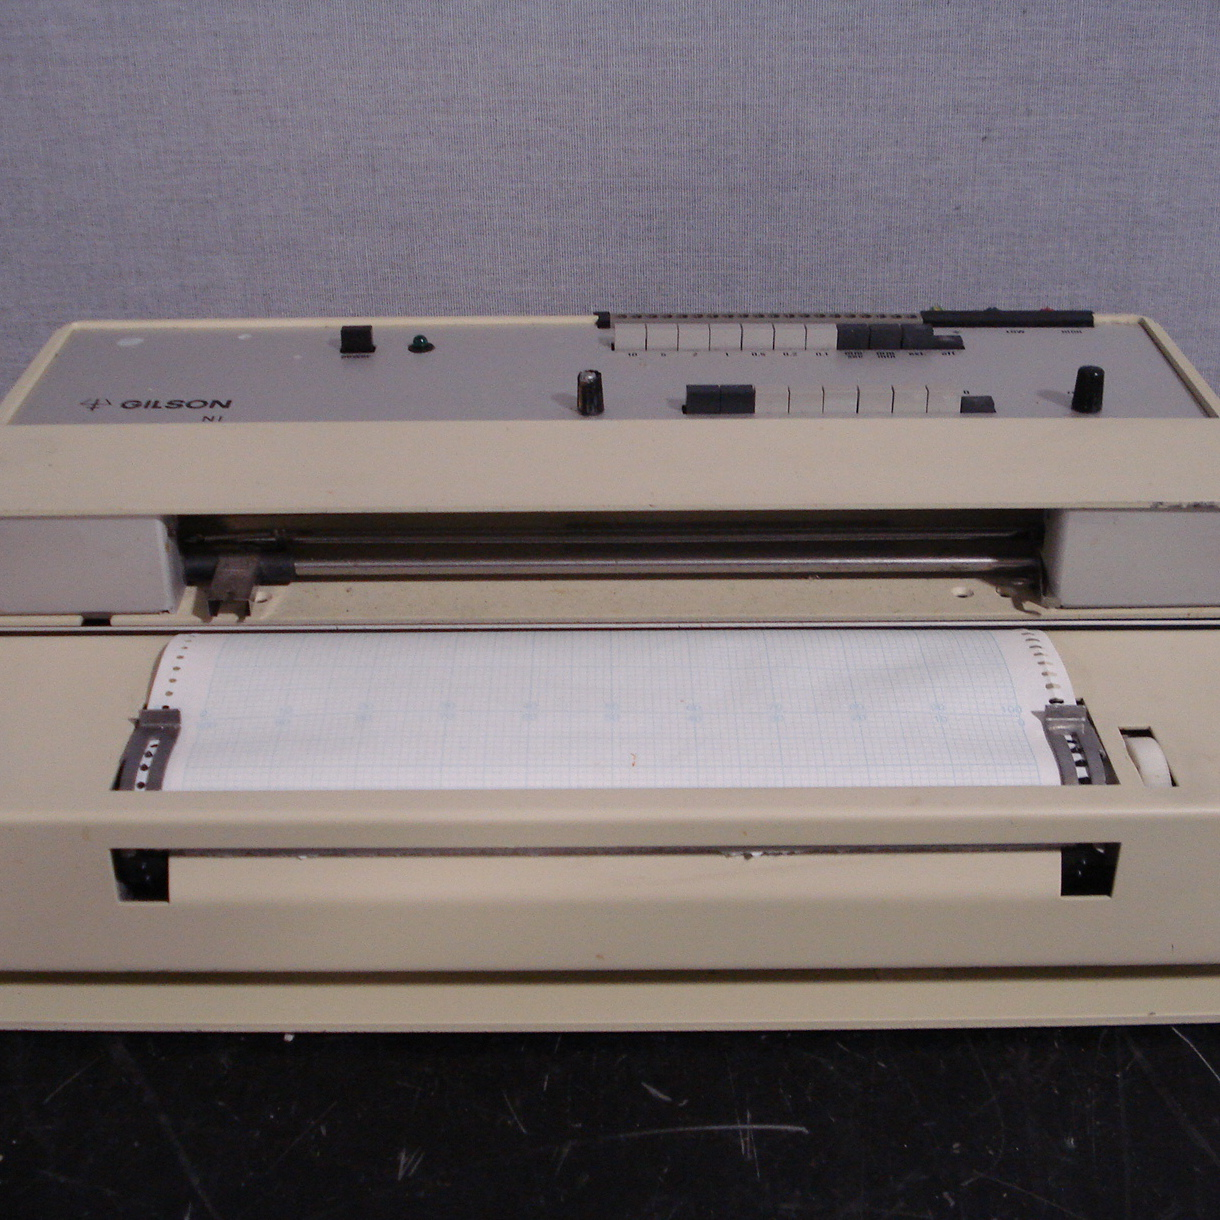 Gilson BD40 Single Pen Chart Recorder Image